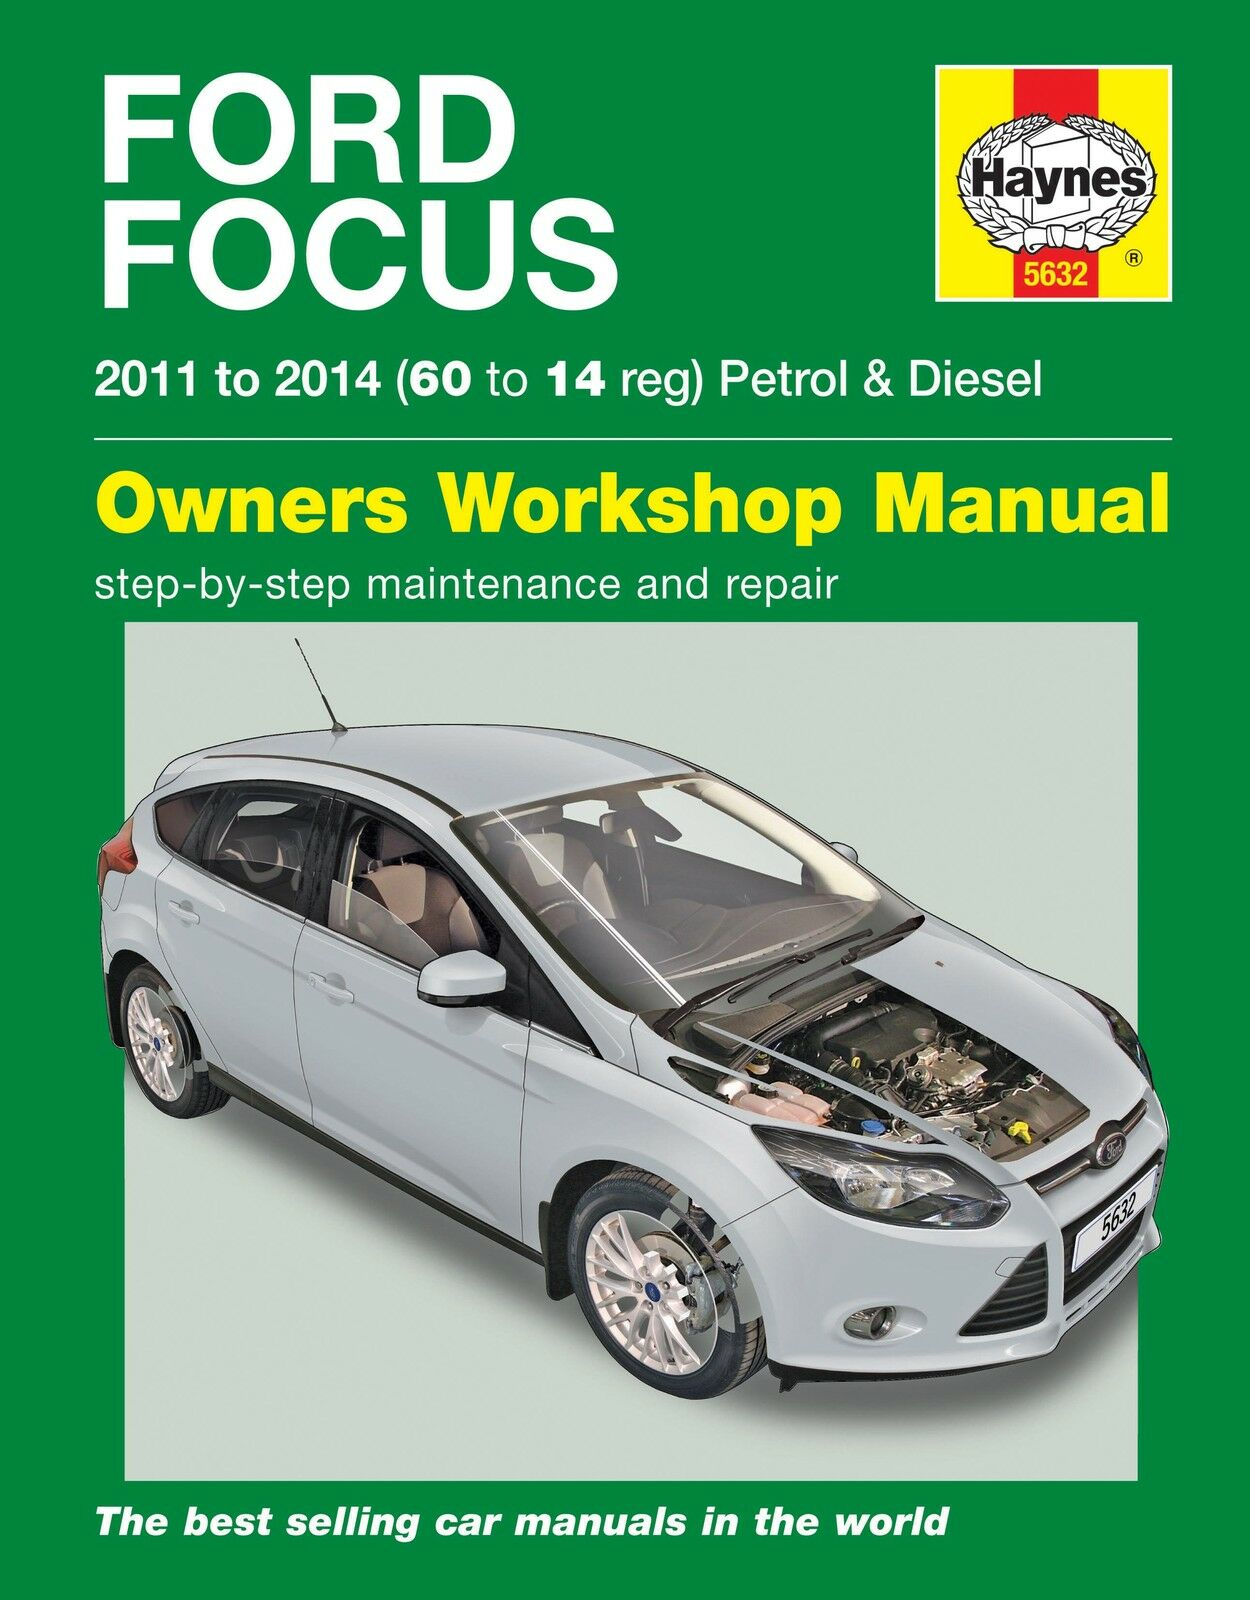 Ford Focus 1.0 1.6 Petrol 1.6 Diesel 2011-14 (60 to 14 reg) Haynes Repair Manual